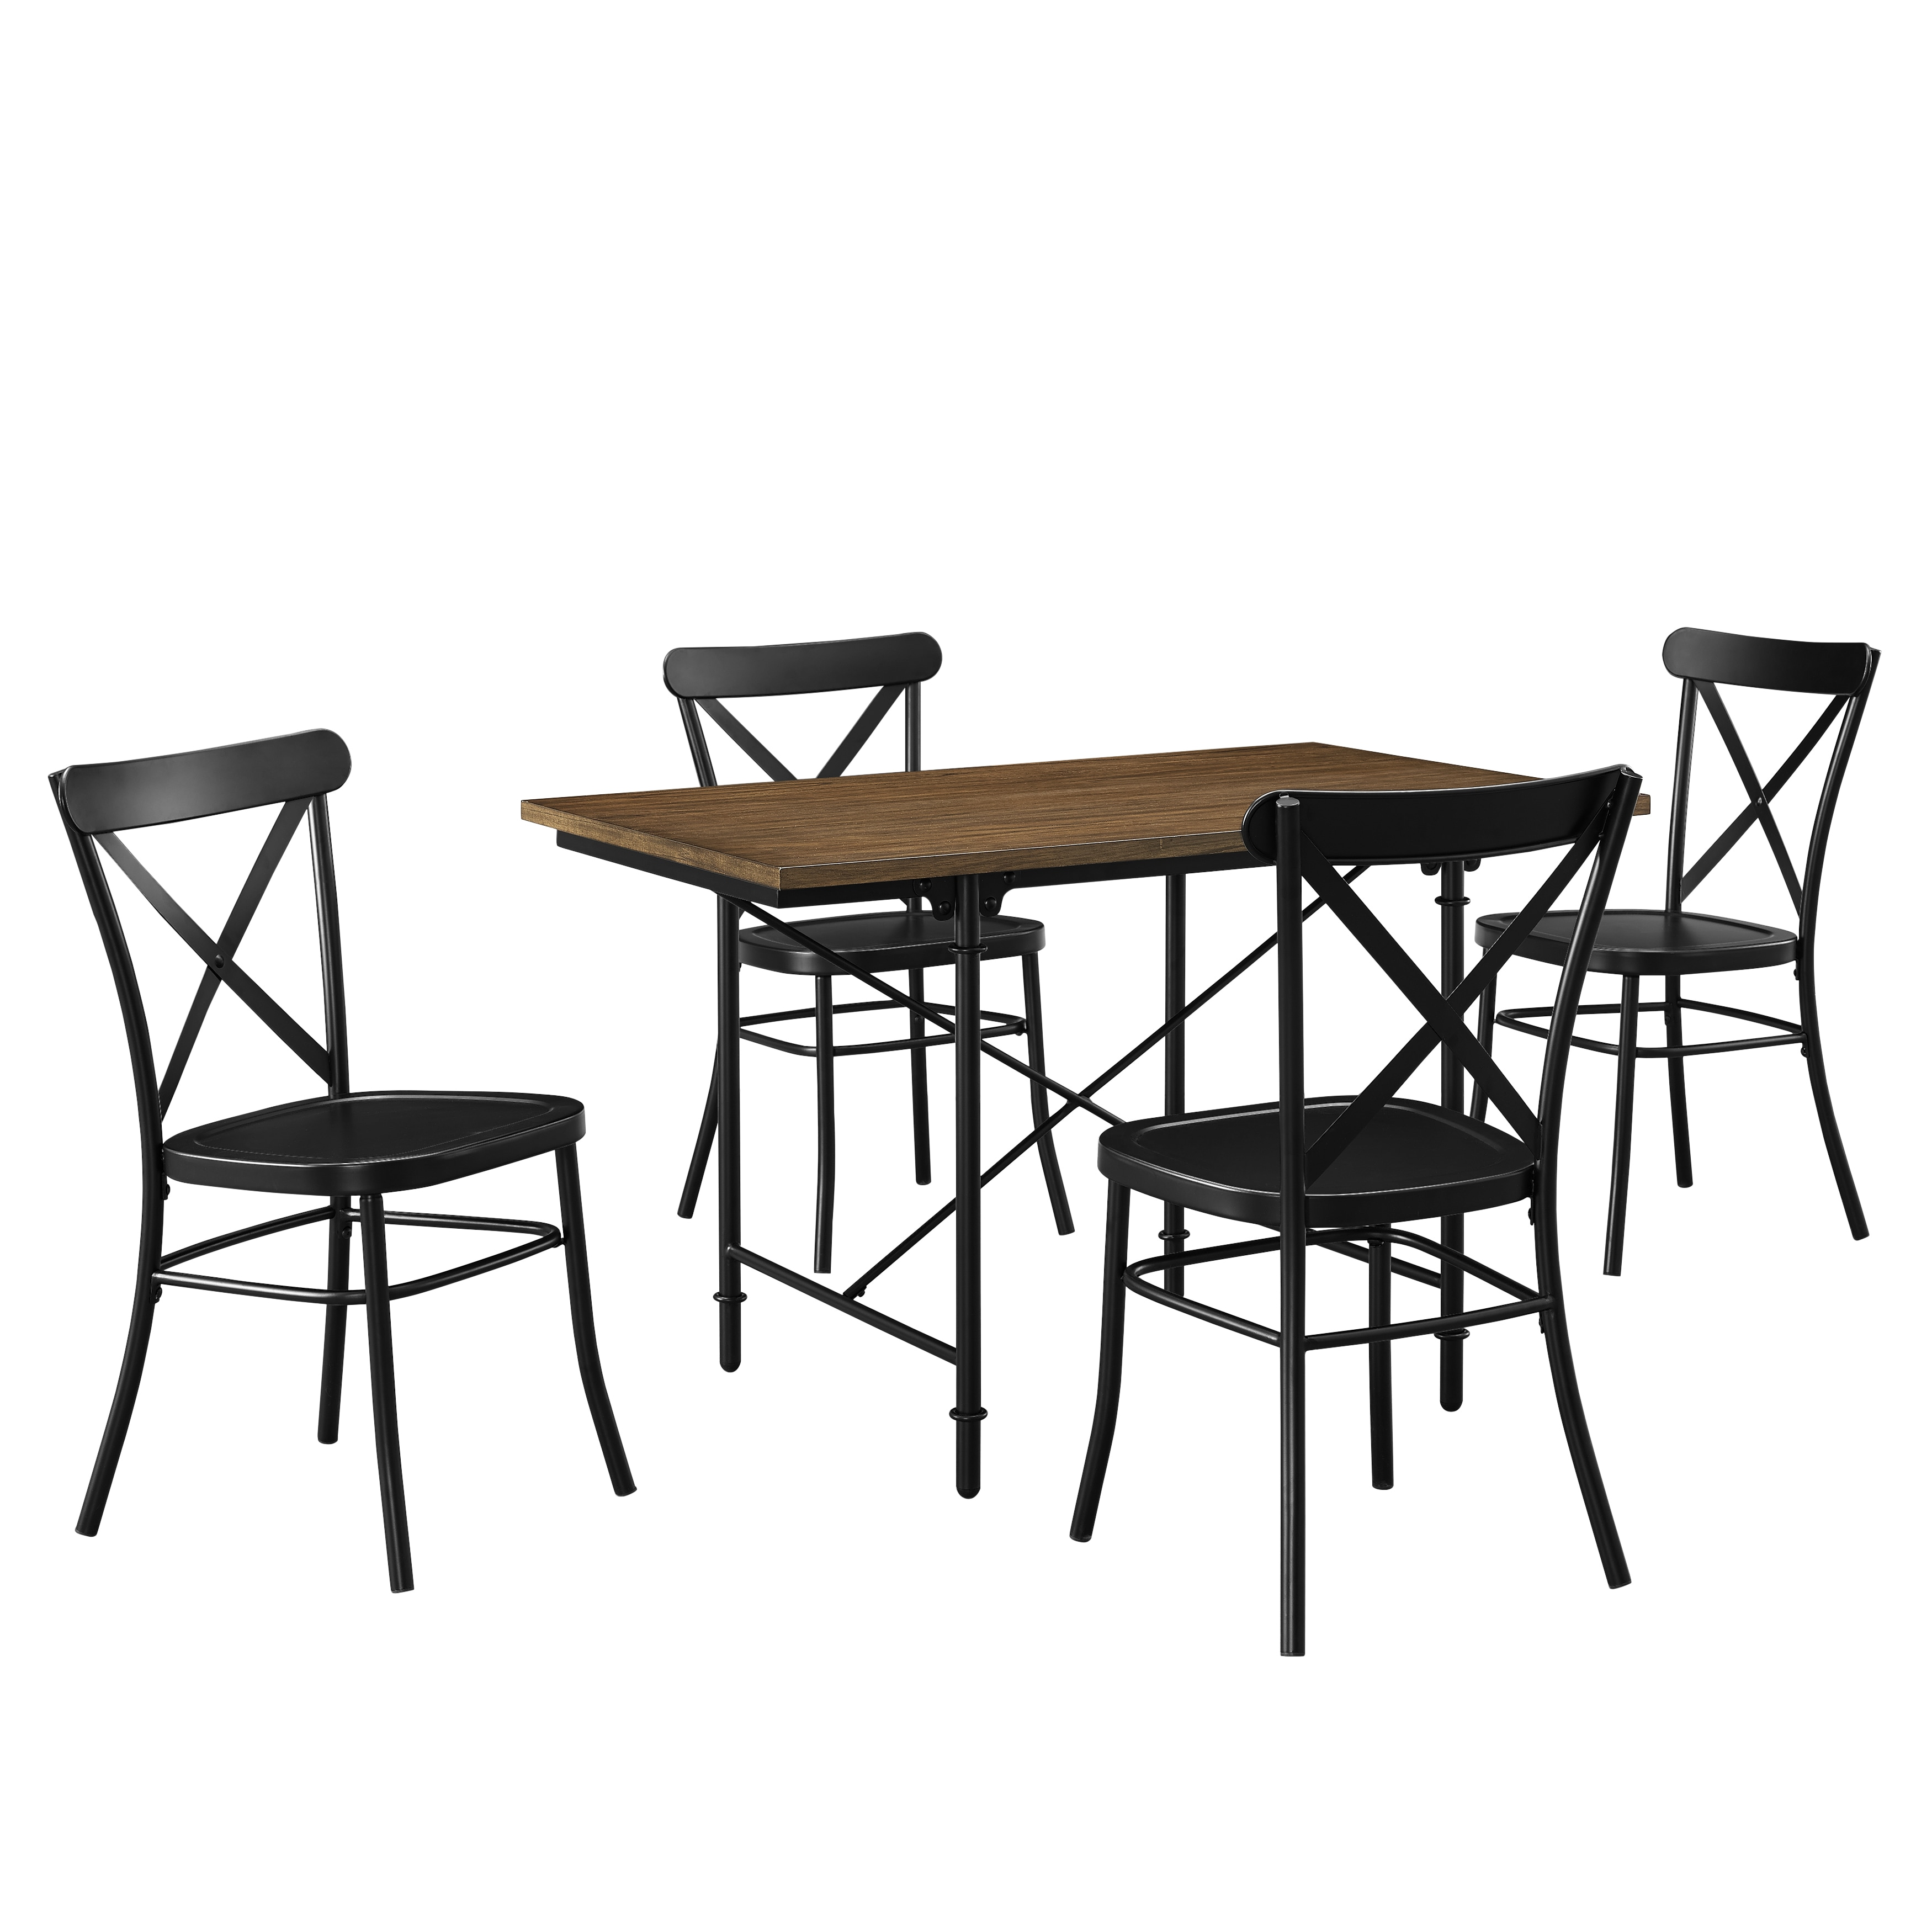 Pulaski Industrial Wood and Metal 5-piece Dining Set (Col...